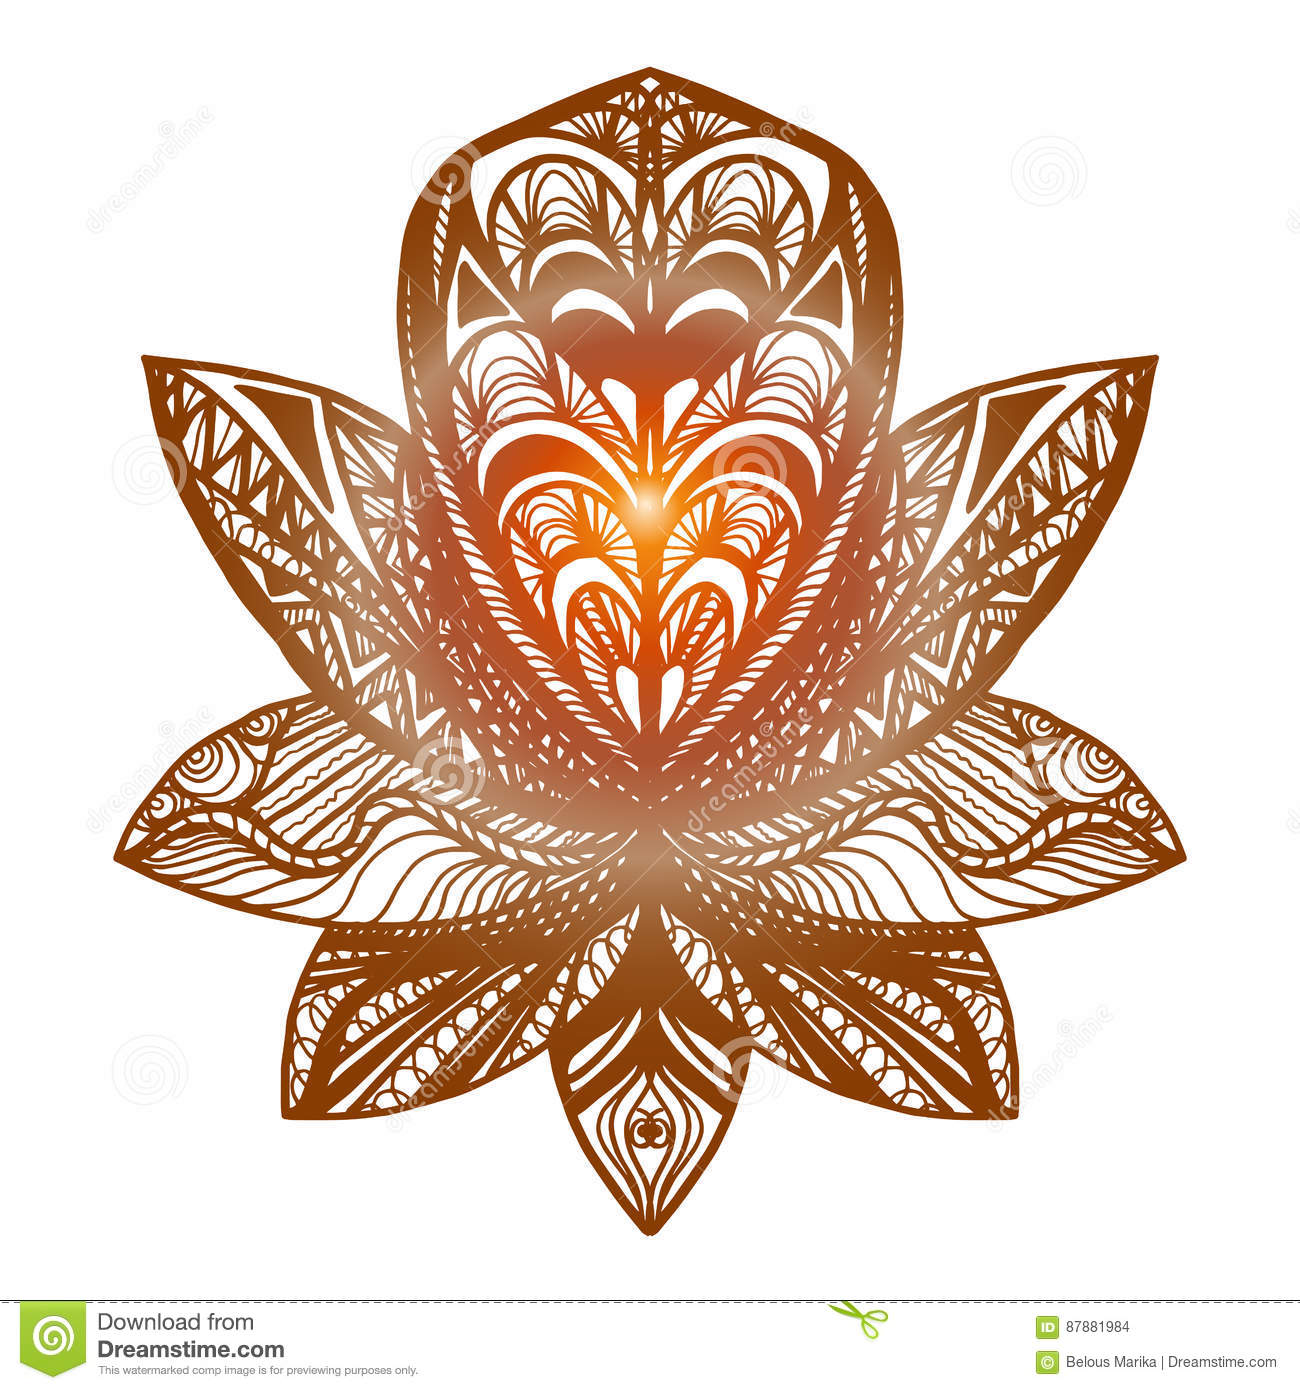 Flower lotus tattoo stock illustration illustration of henna 87881984 download flower lotus tattoo stock illustration illustration of henna 87881984 izmirmasajfo